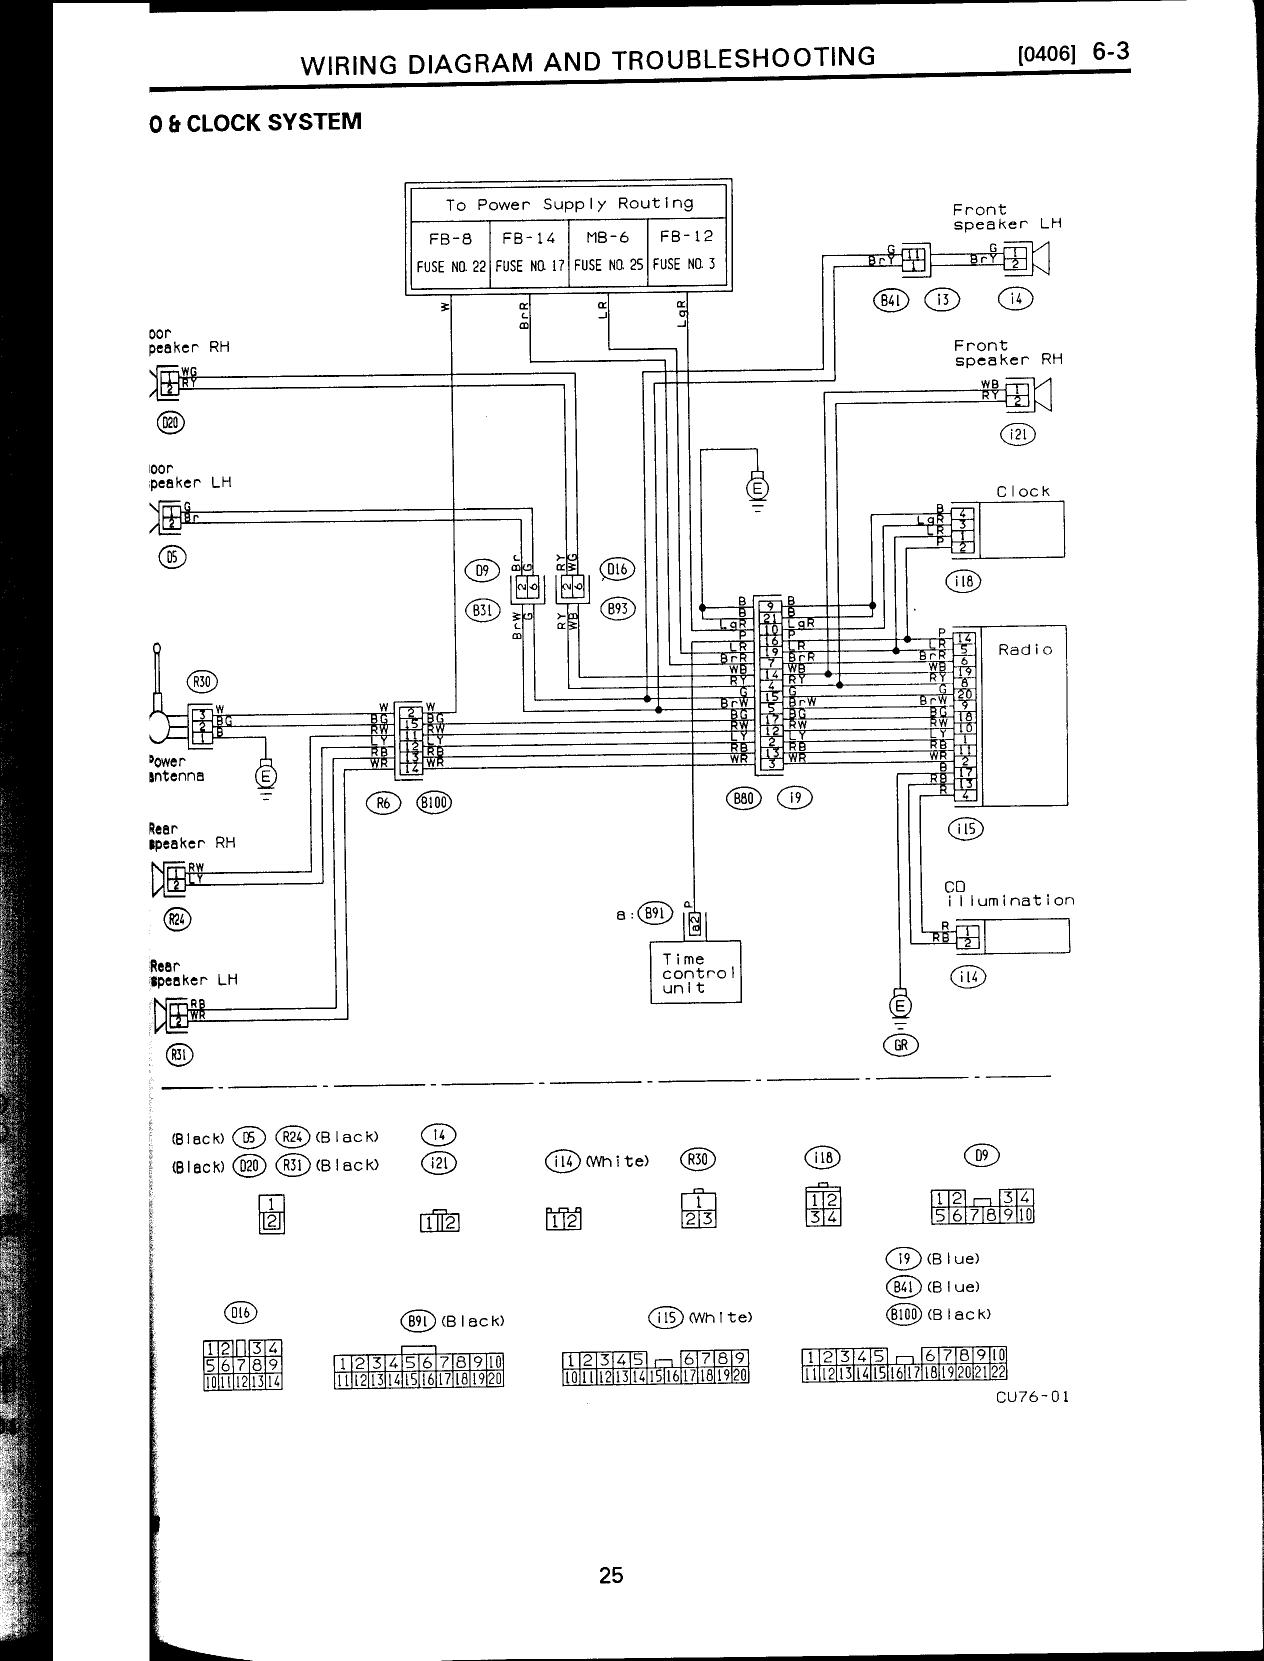 Subaru Wiring Diagrams Trusted Generator Diagram Car Manuals Pdf Fault Codes